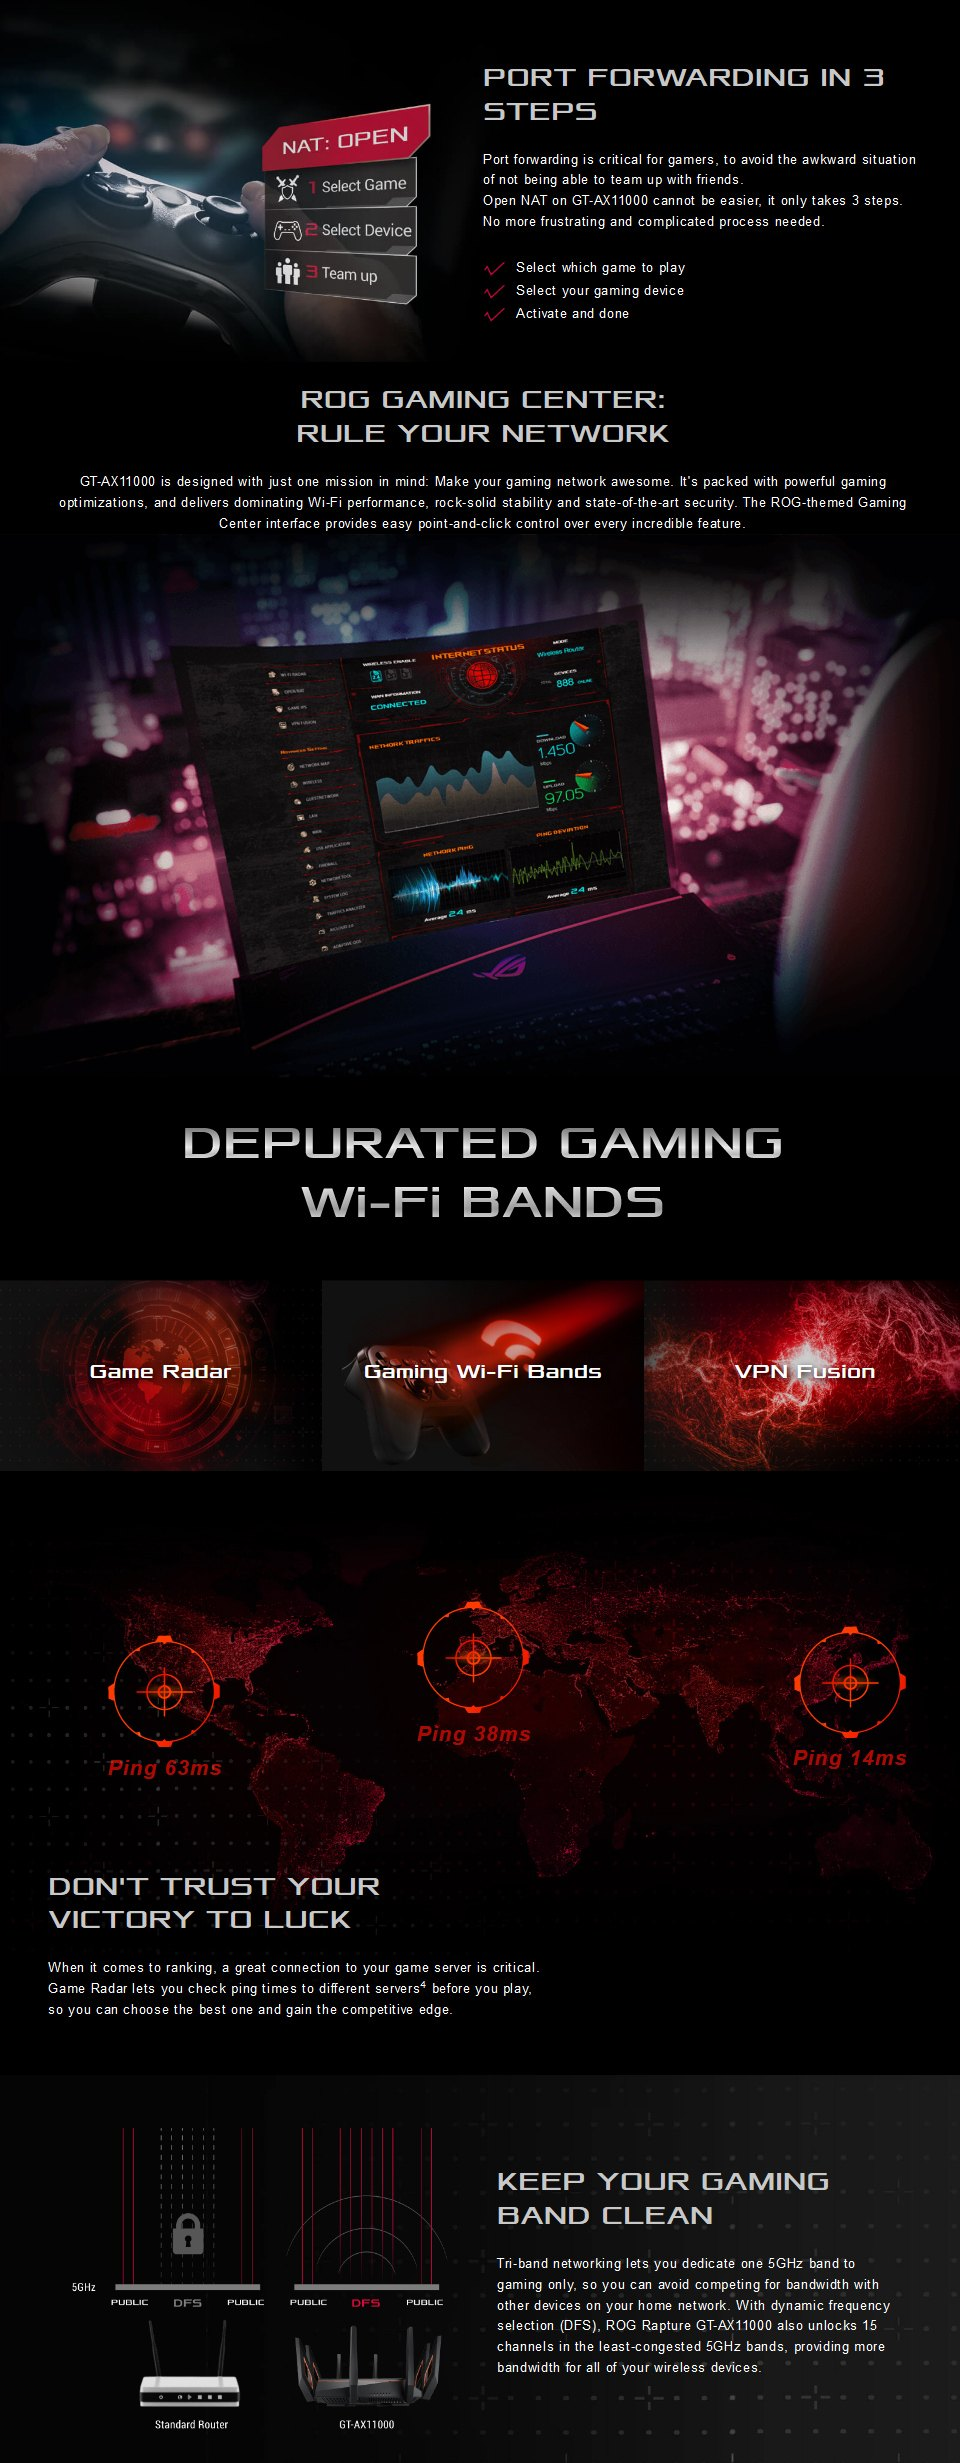 ASUS ROG Rapture GT-AX11000 Tri-band Wi-Fi 6 Gaming Router features 2